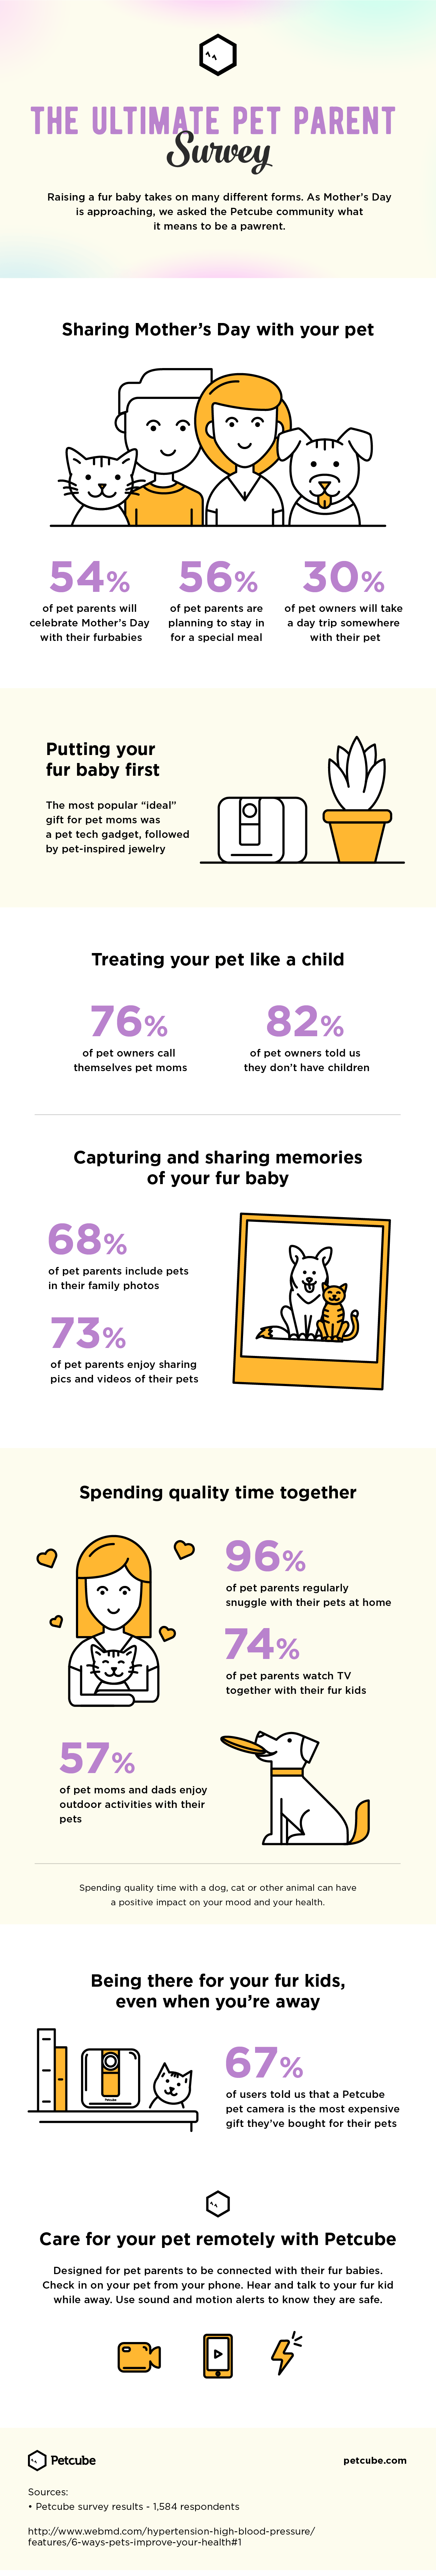 The Ultimate Pet Parent Infographic